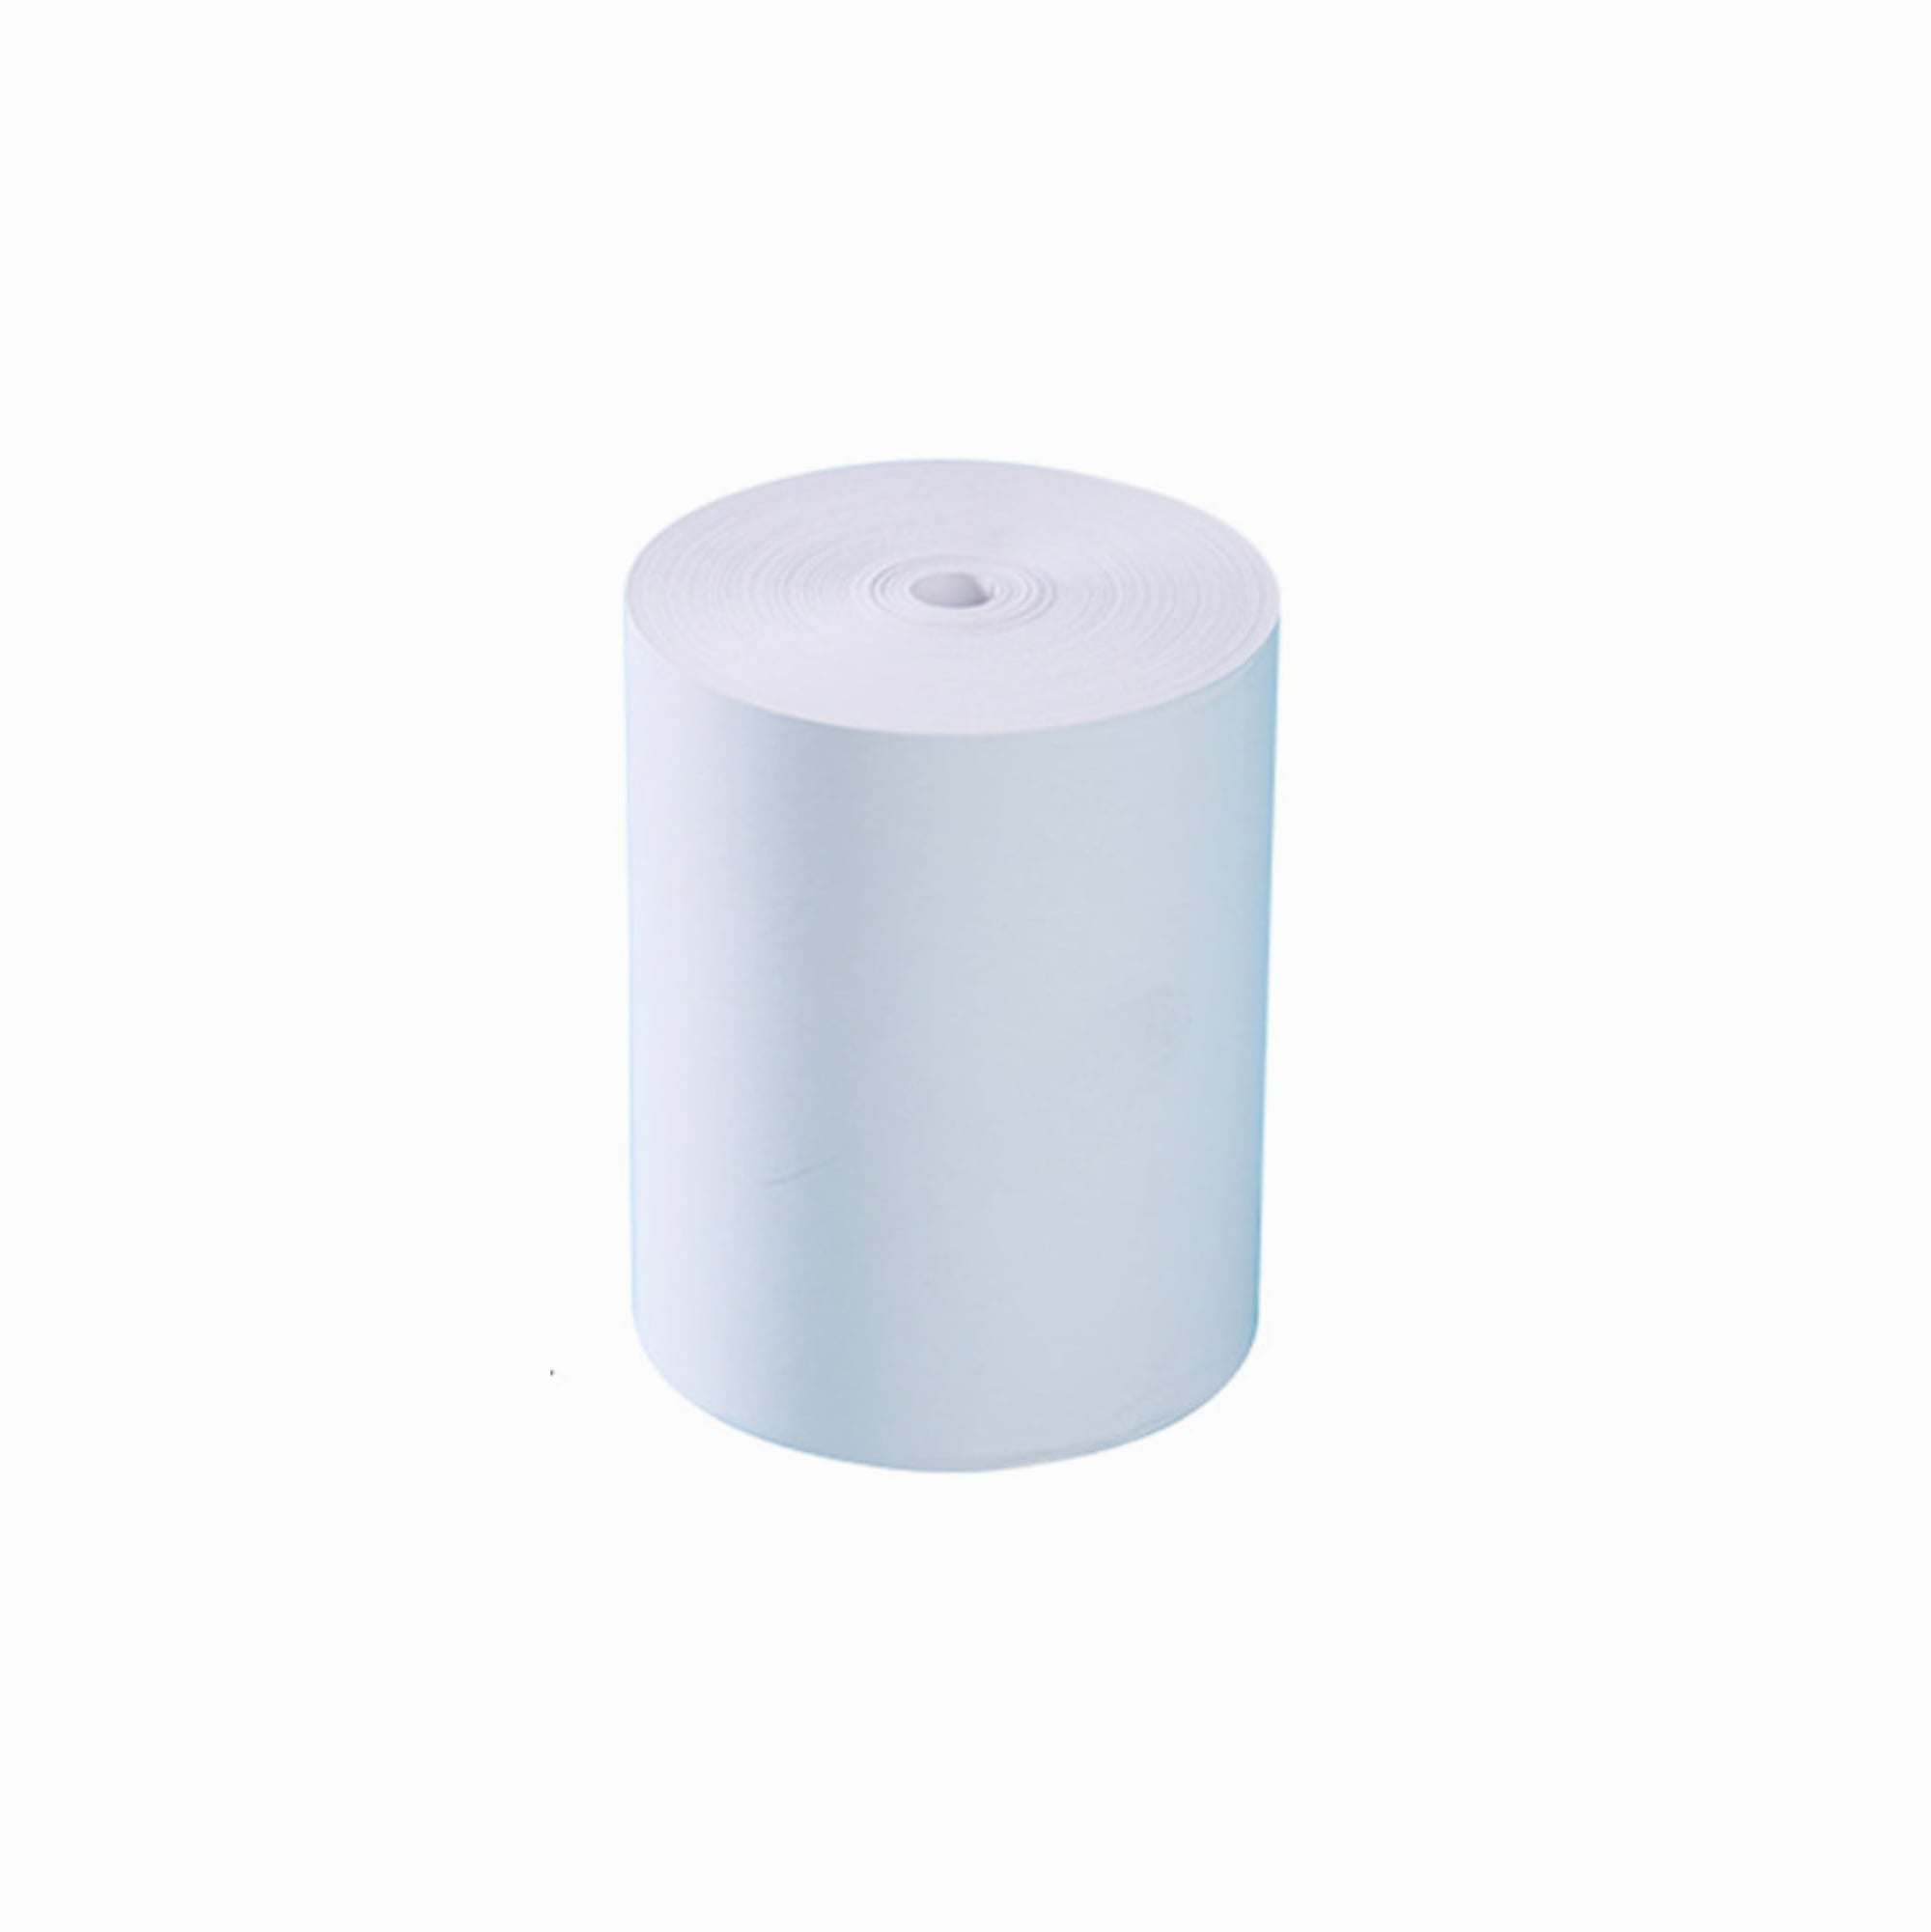 100 rolls 57x57mm Thermal Paper Cash Register Receipt Rolls